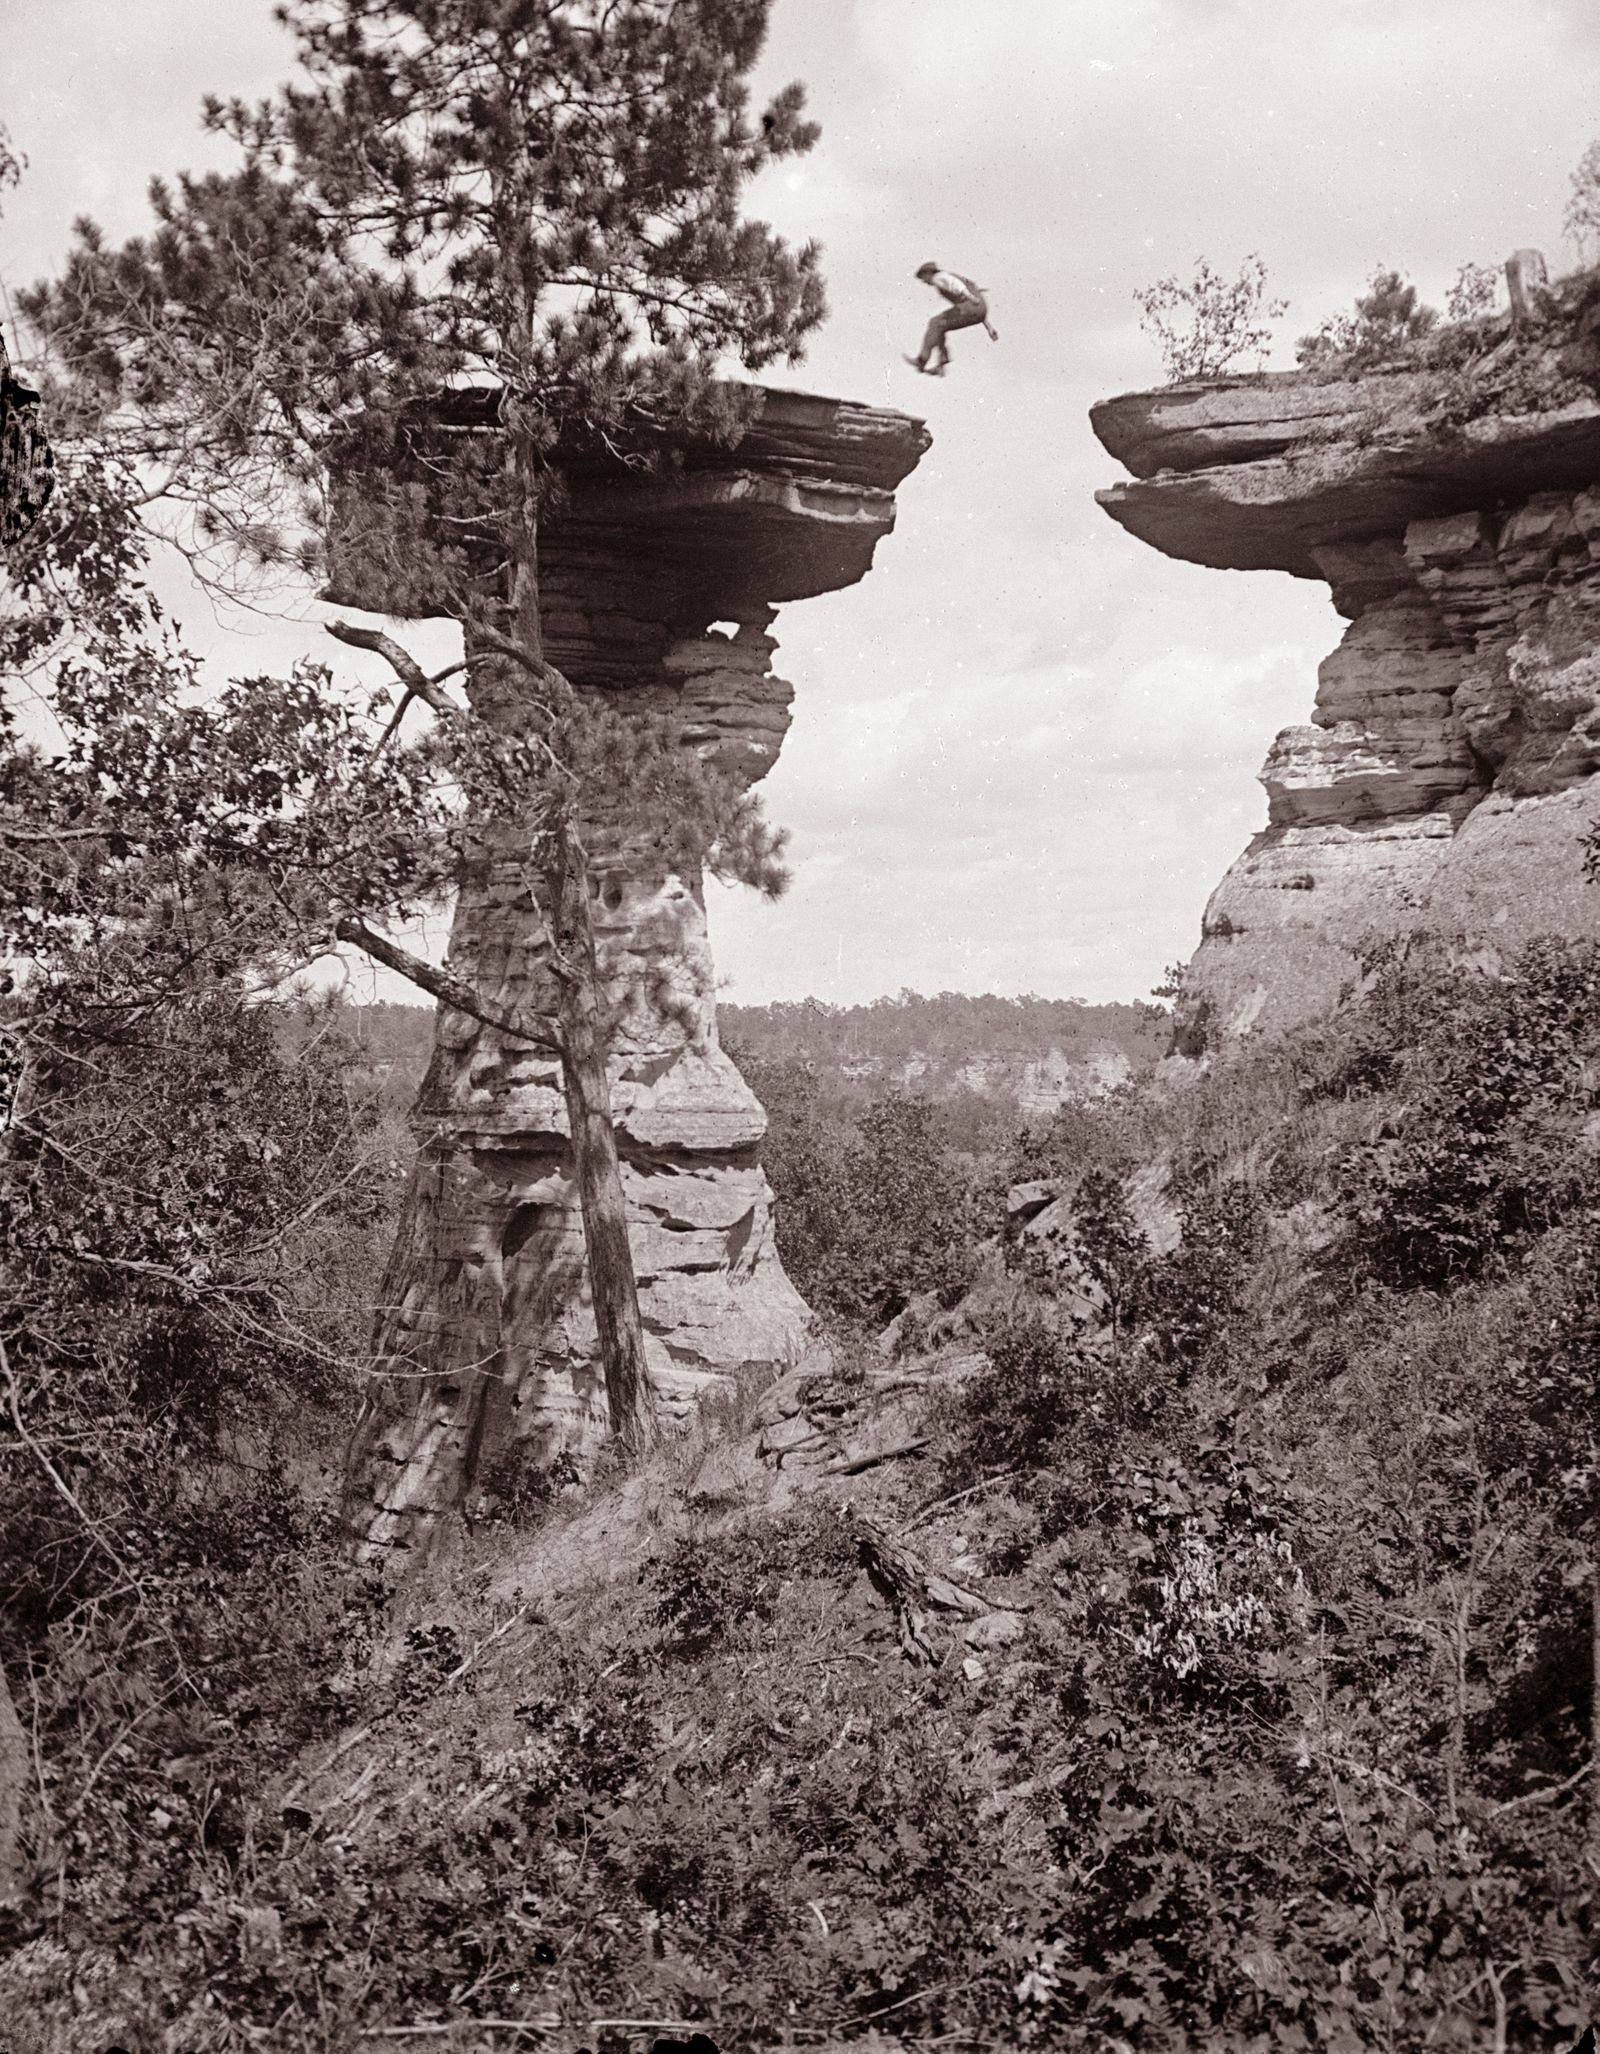 Man Leaping to Stand Rock